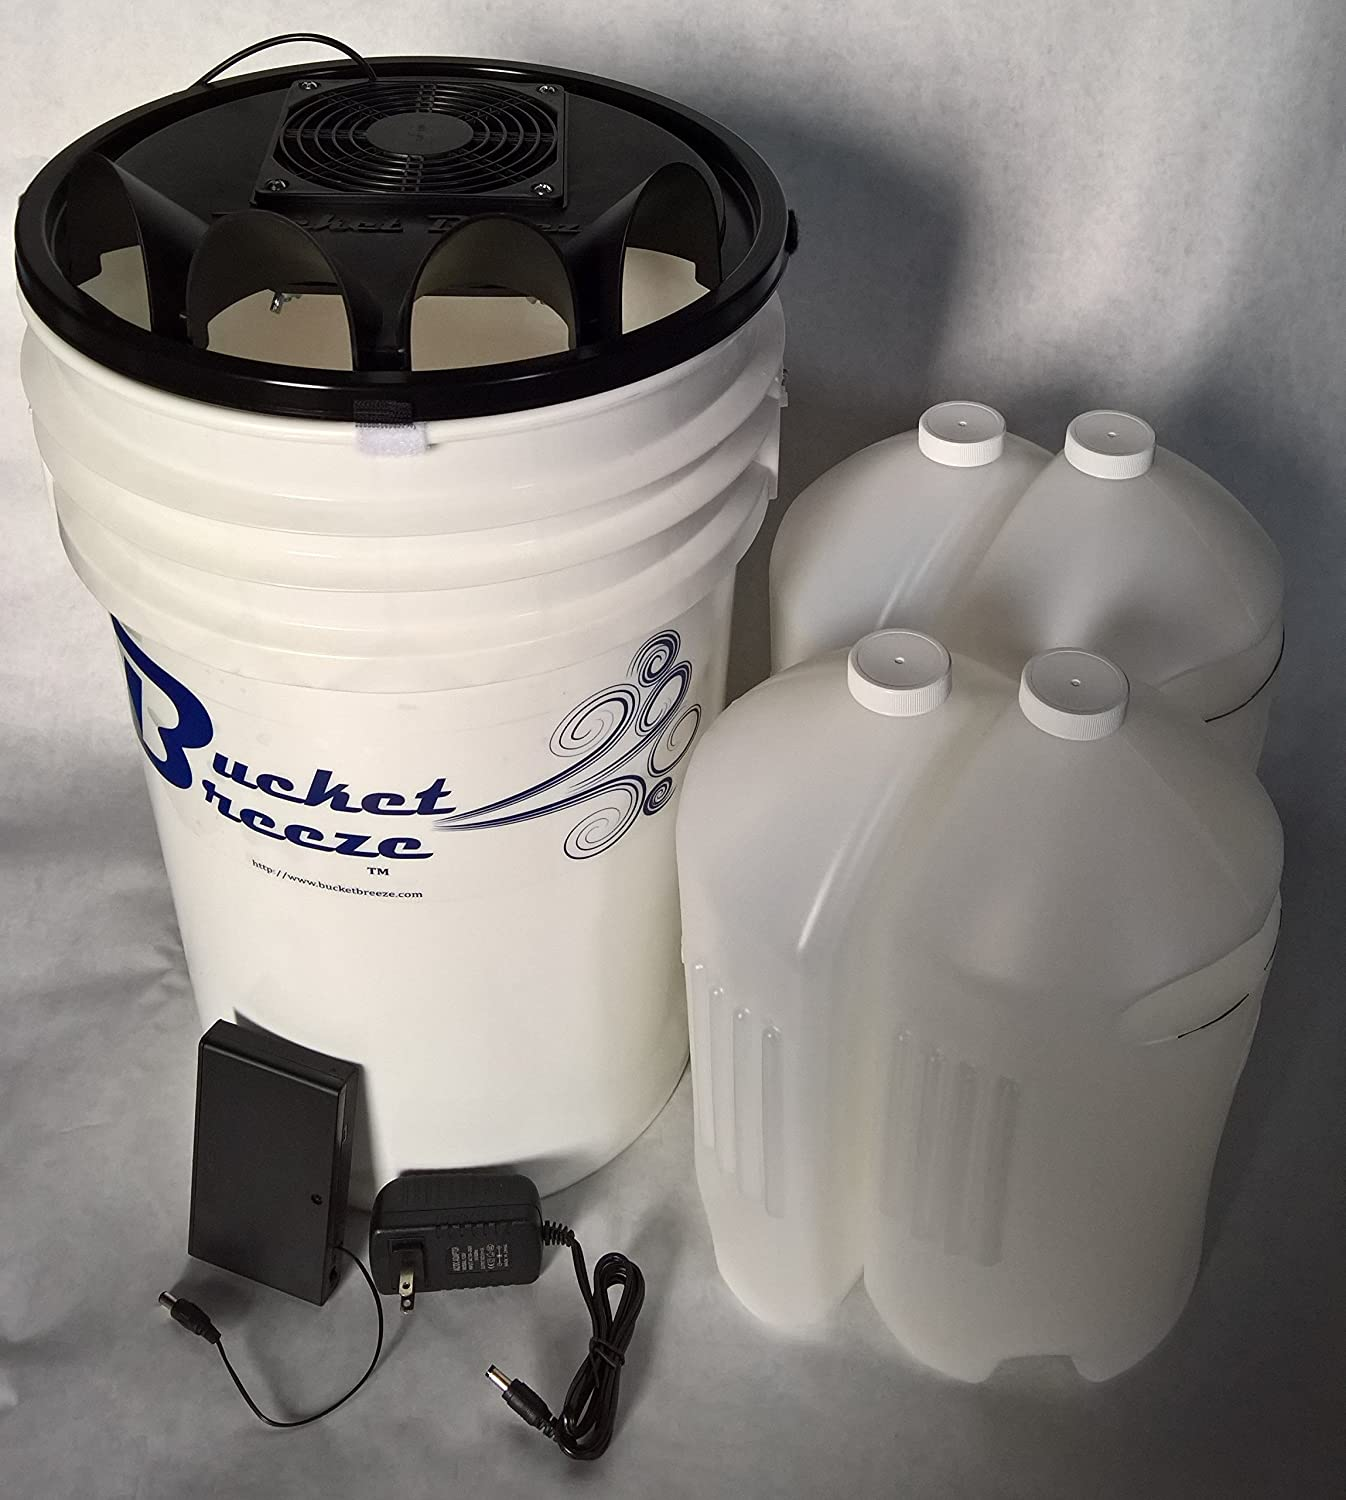 Bucket Breeze Regular Breeze - Personal Cooling System Portable Air Conditioner